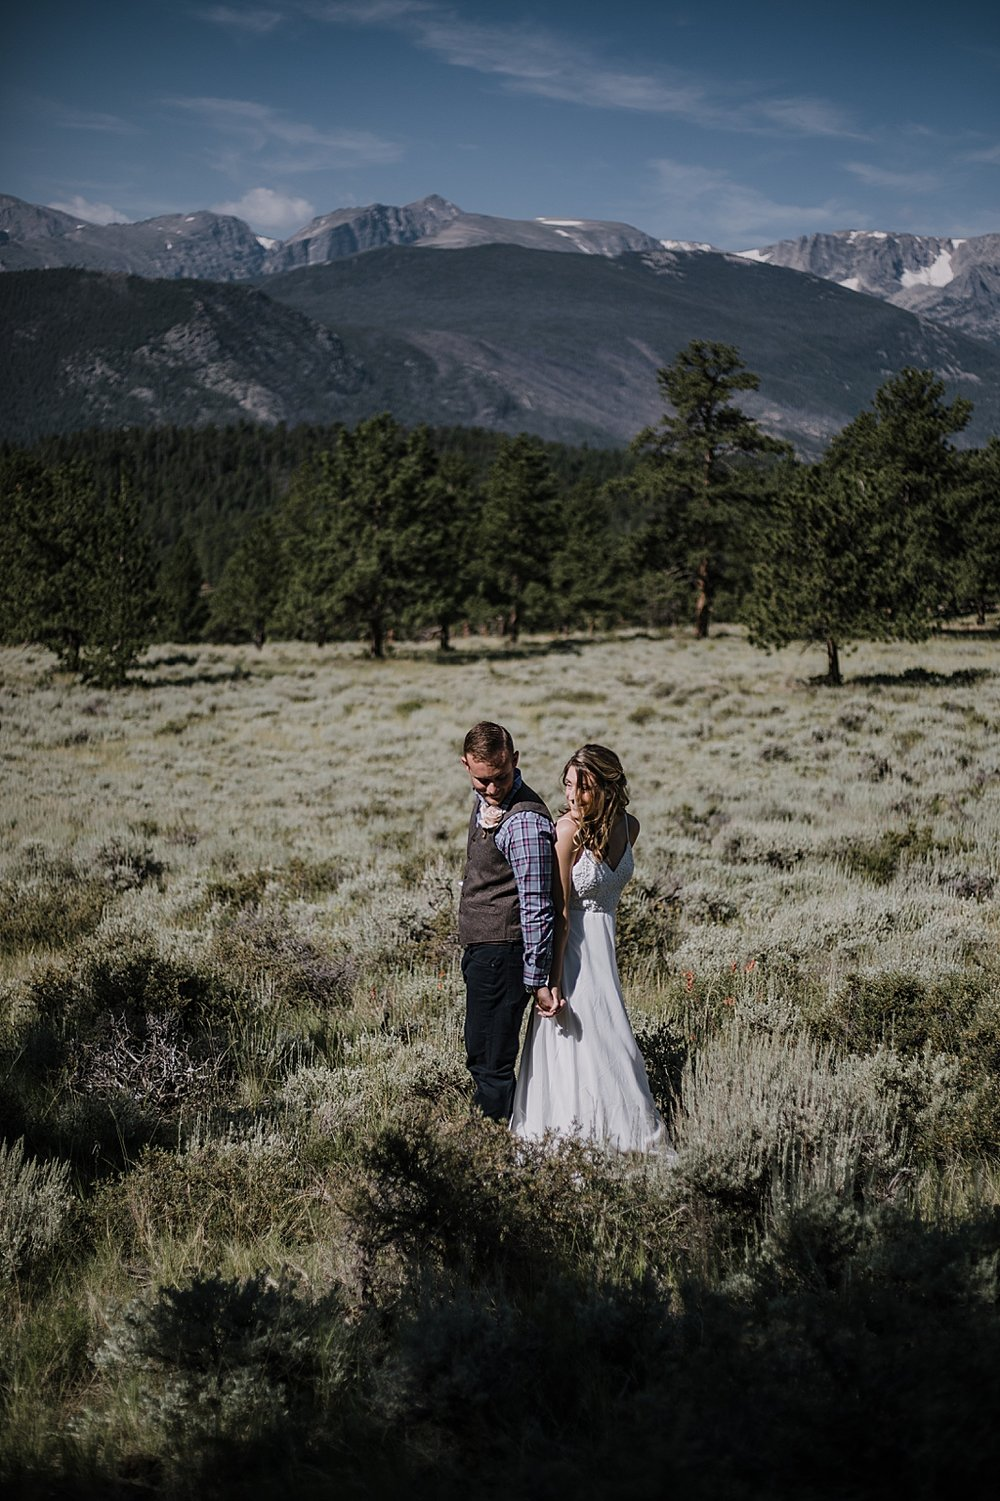 couple in field, RMNP elopement ceremony, rocky mountain national park elopement, 3M curves elopement, self solemnizing, self solemnization, long's peak, summer hiking elopement, estes park elopement